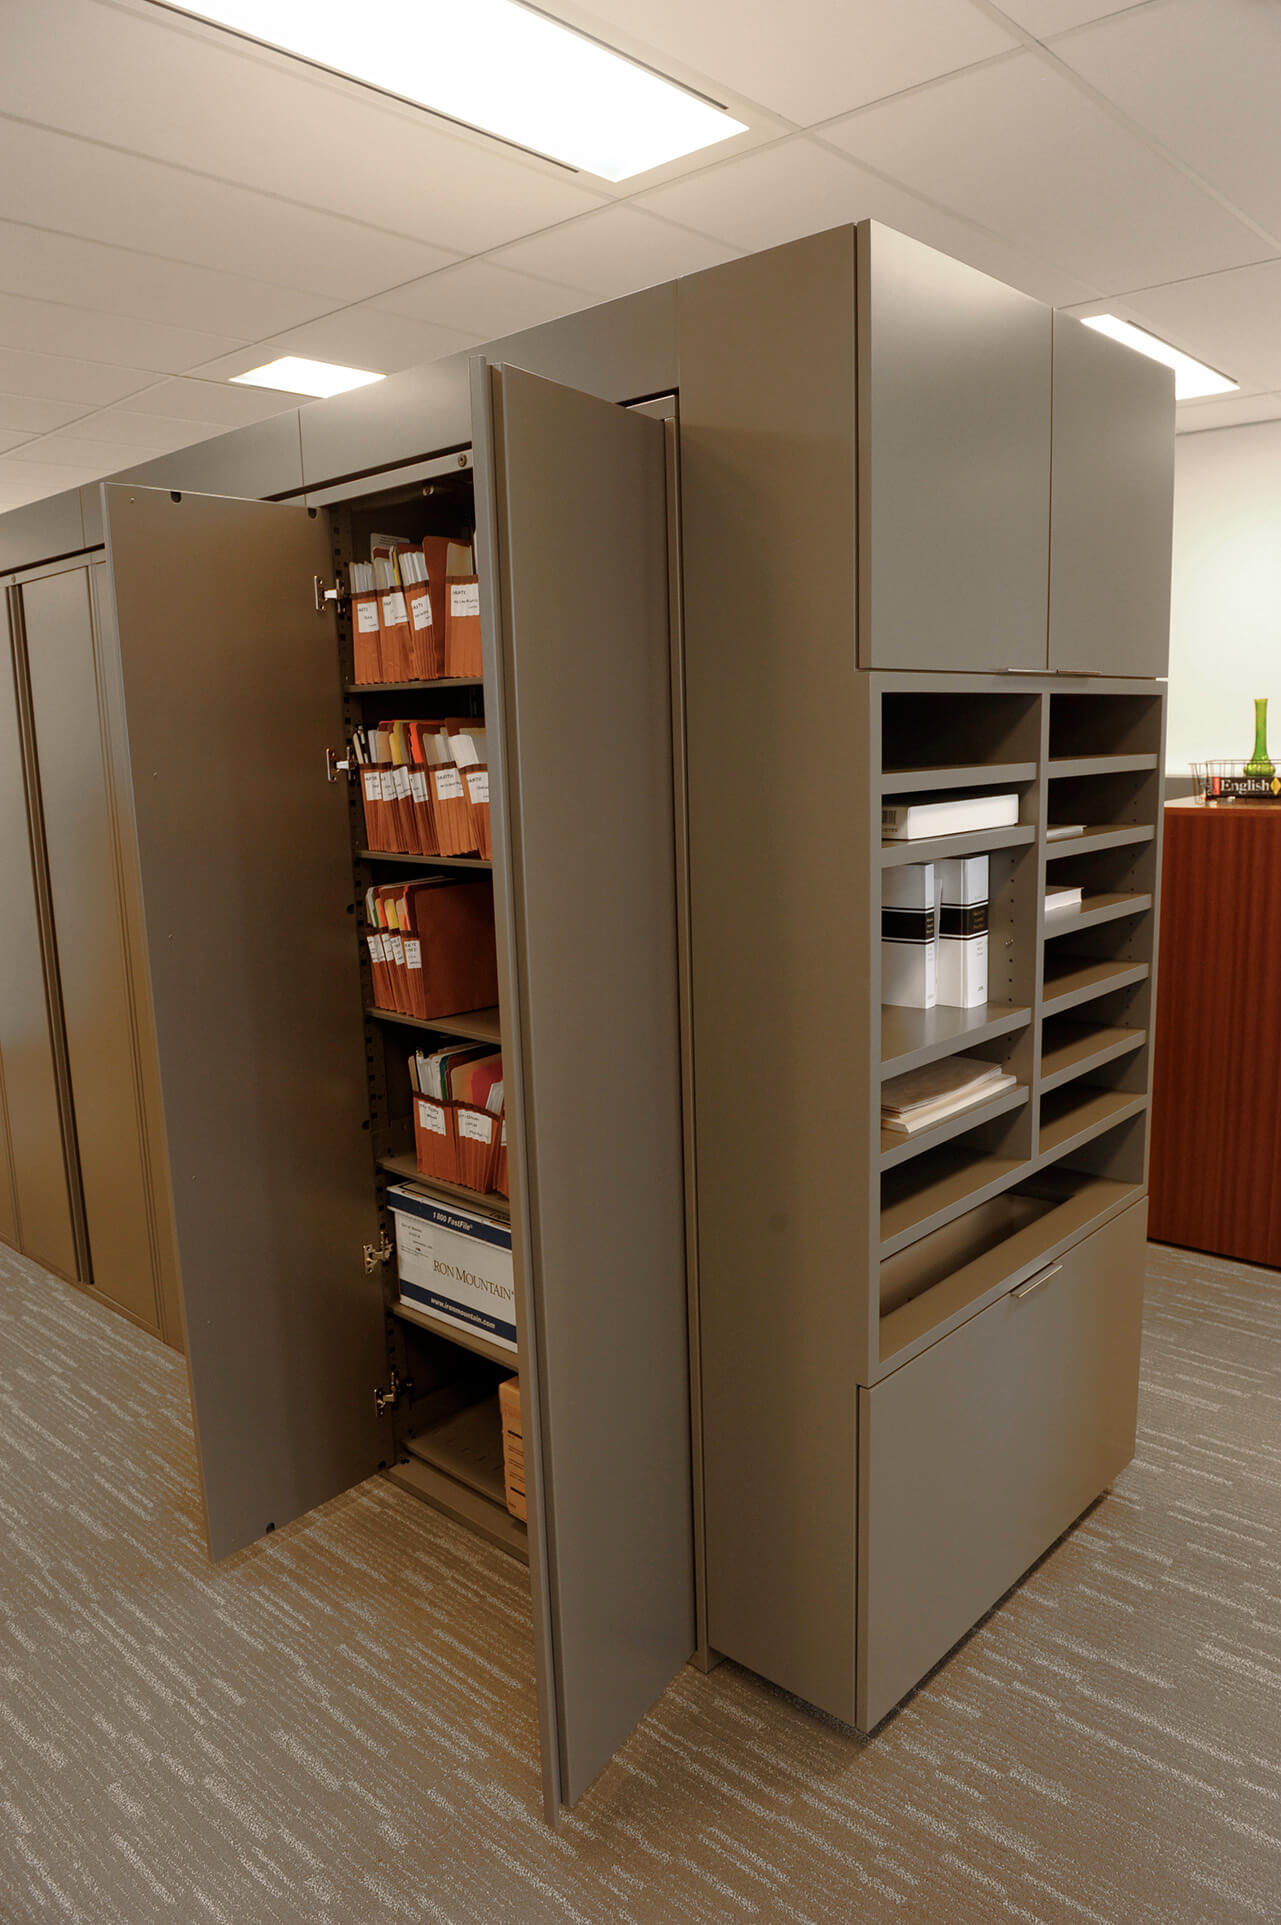 Office Storage Solutions - Spacesaver Storage Solutions